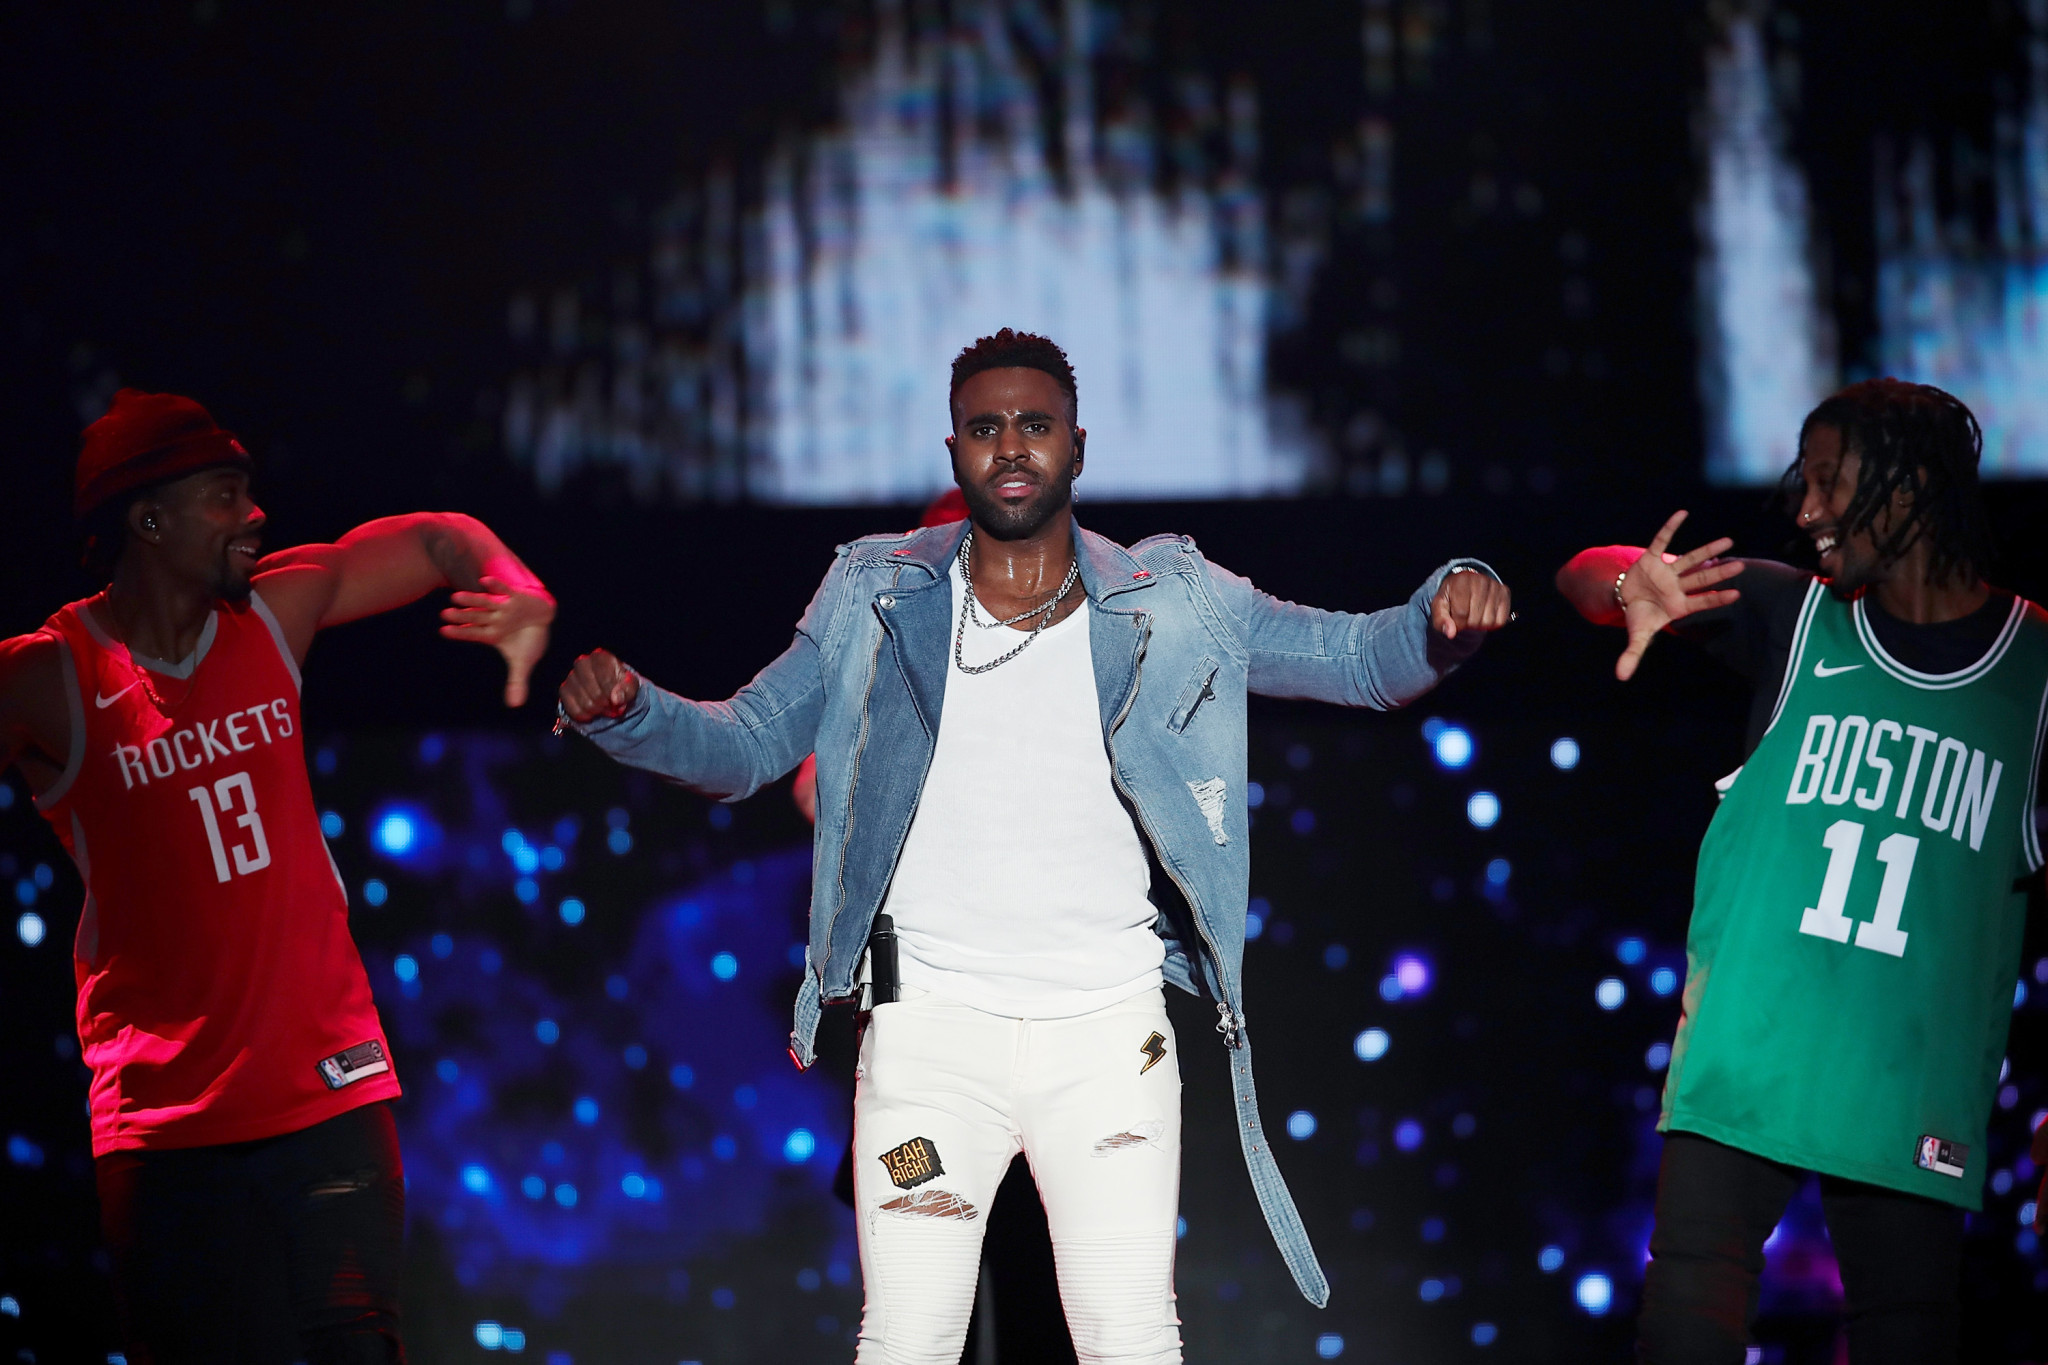 American singer songwriter Jason Derulo headlined the FIBA Basketball World Cup draw ©Getty Images